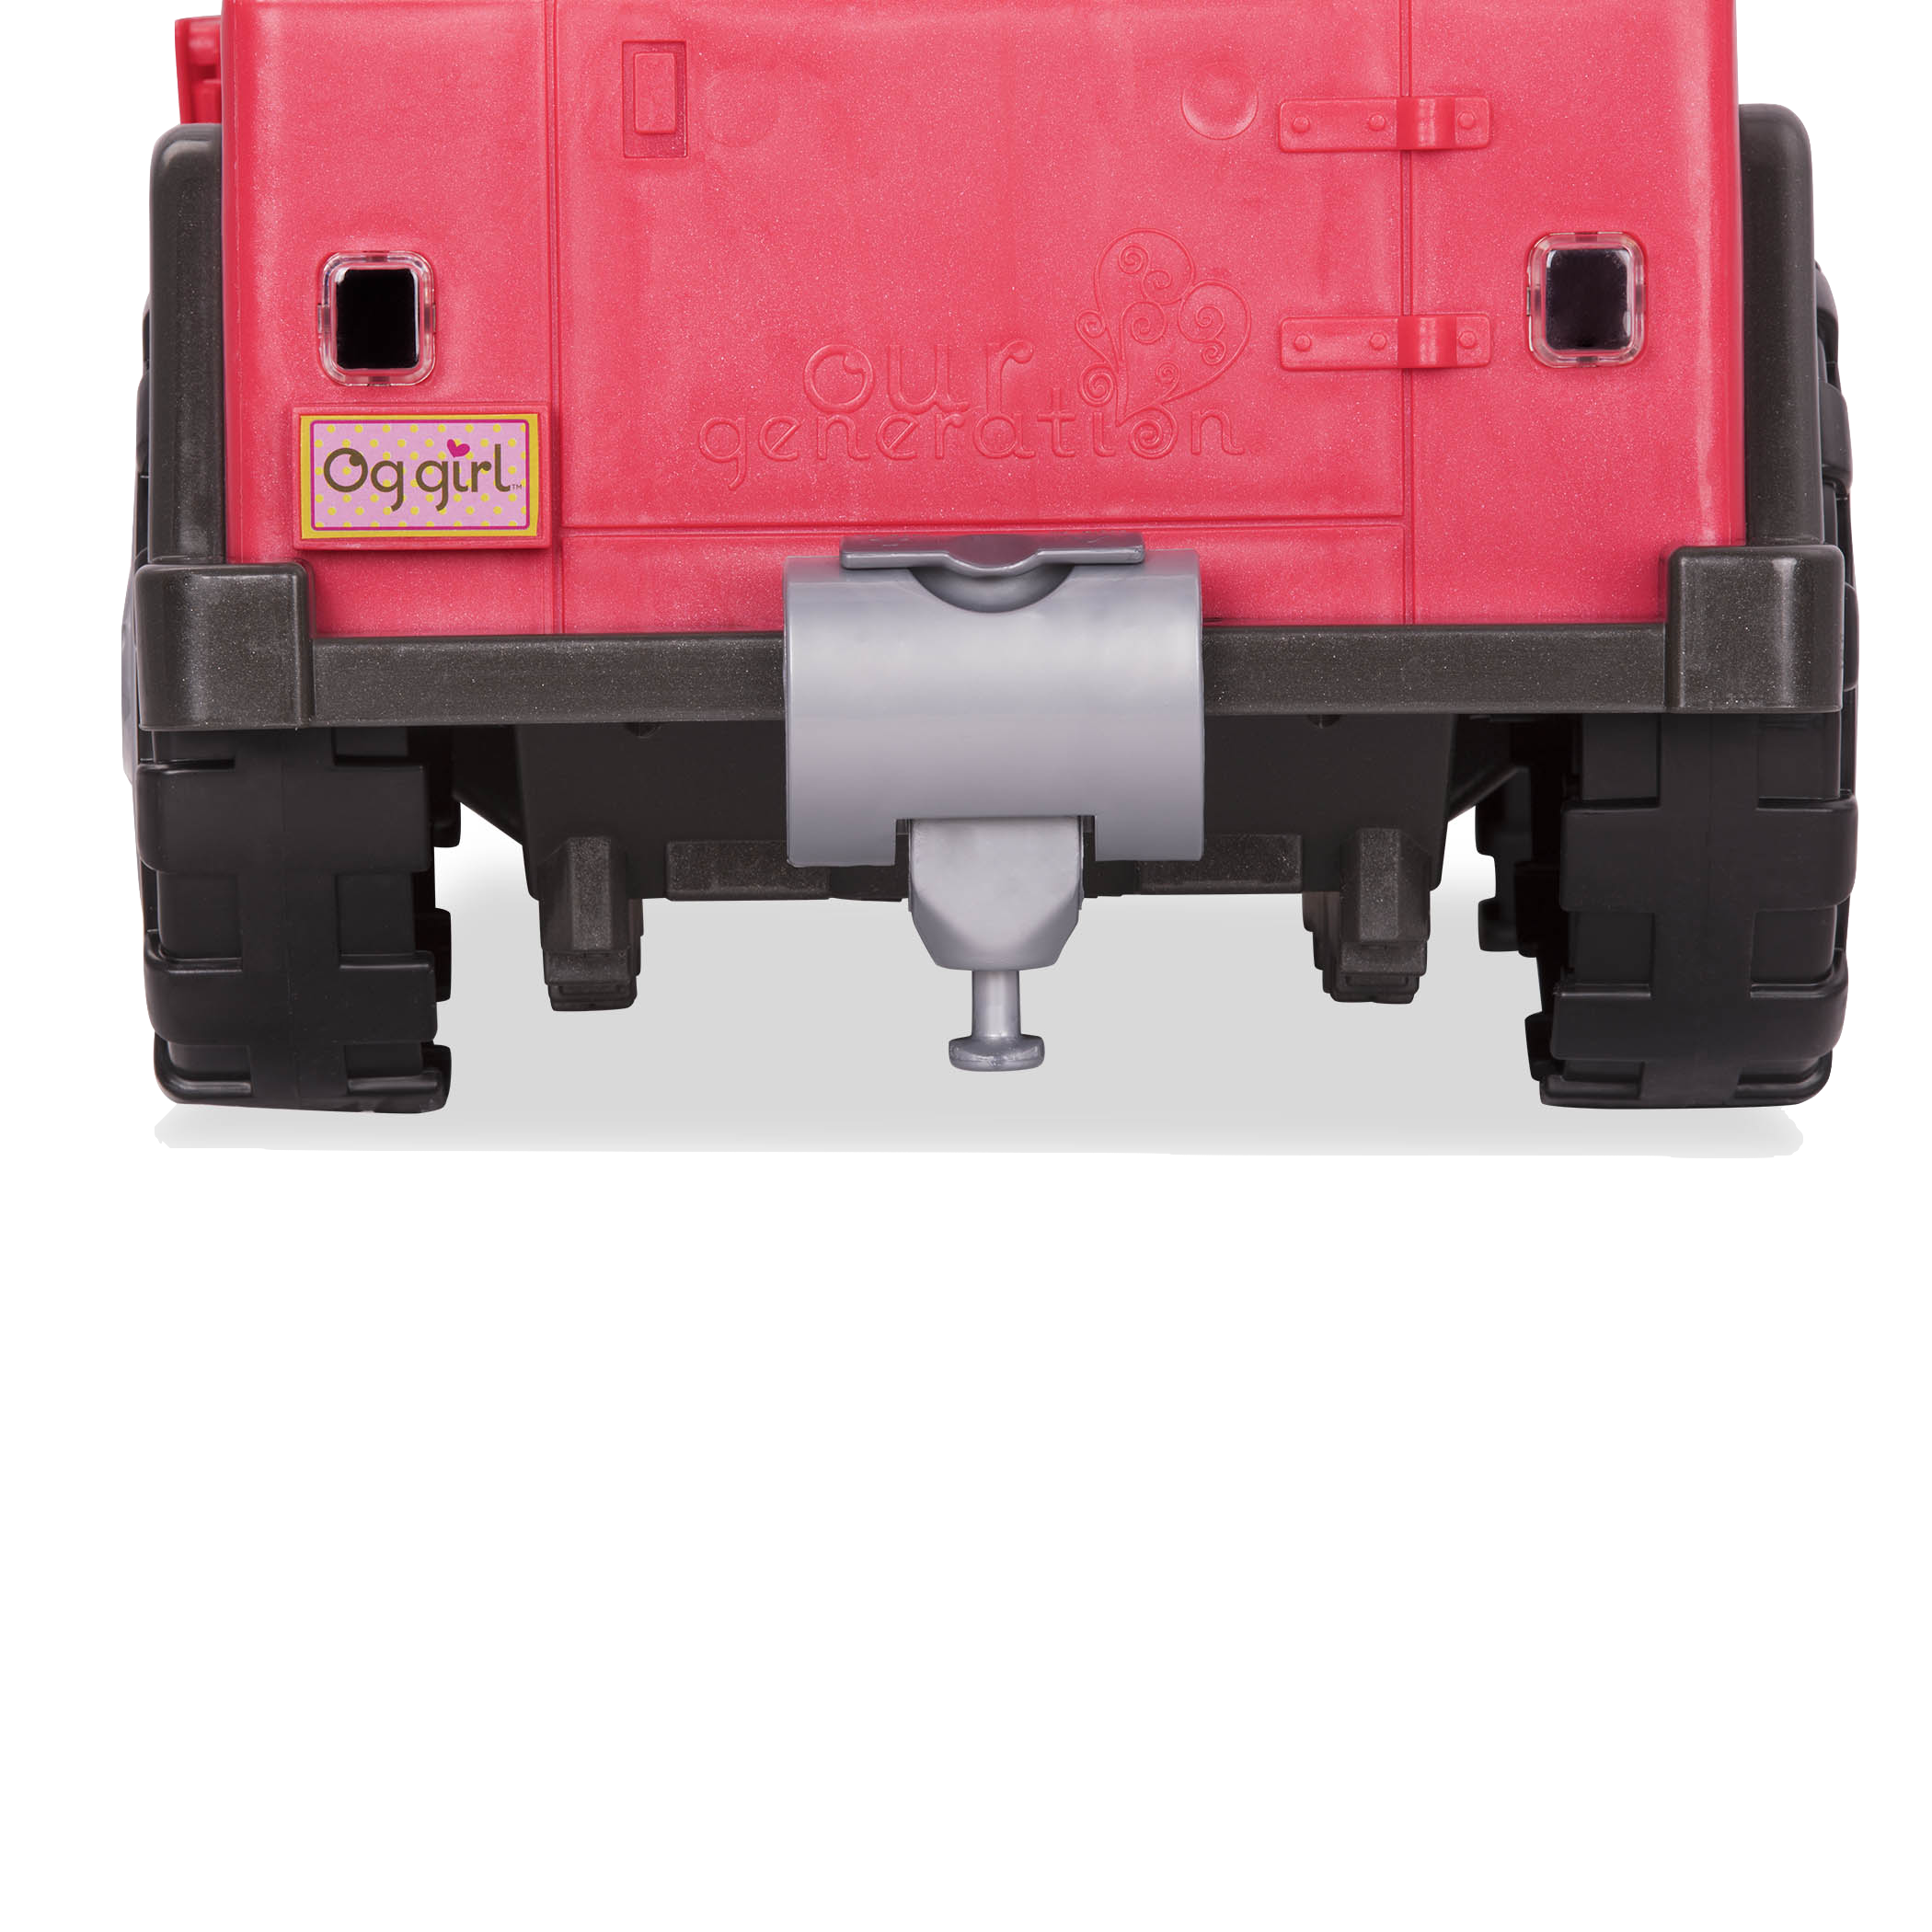 Trailer Hitch component attached to 4x4